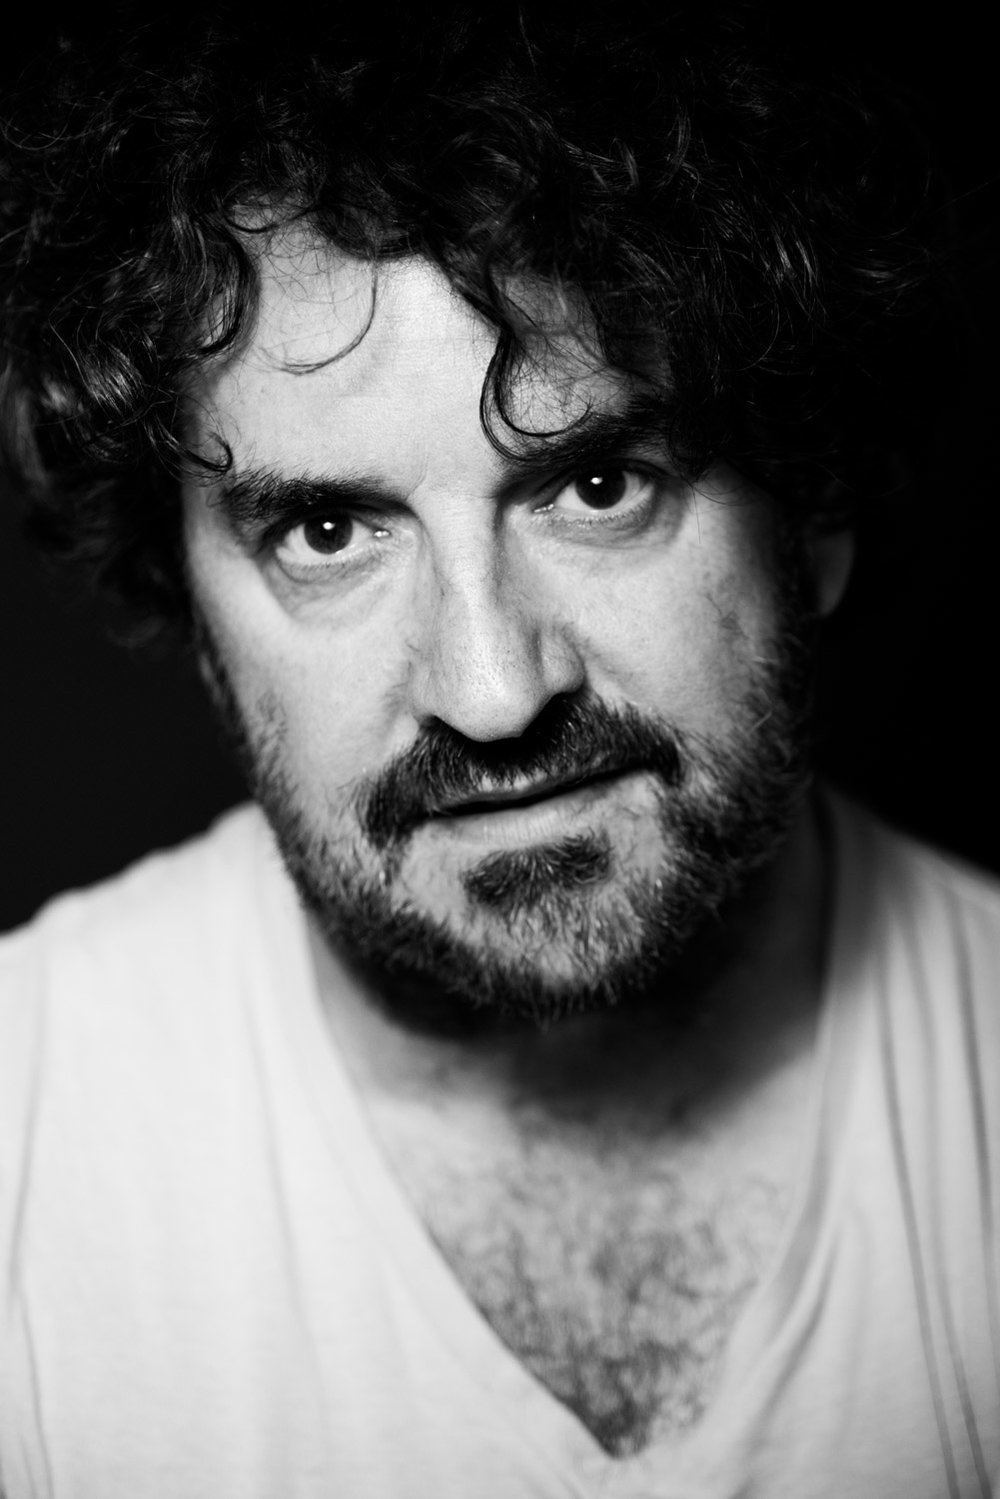 Ian Prowse - Promo Shoot - 13.09.18 - Low Res-61 (2).jpg